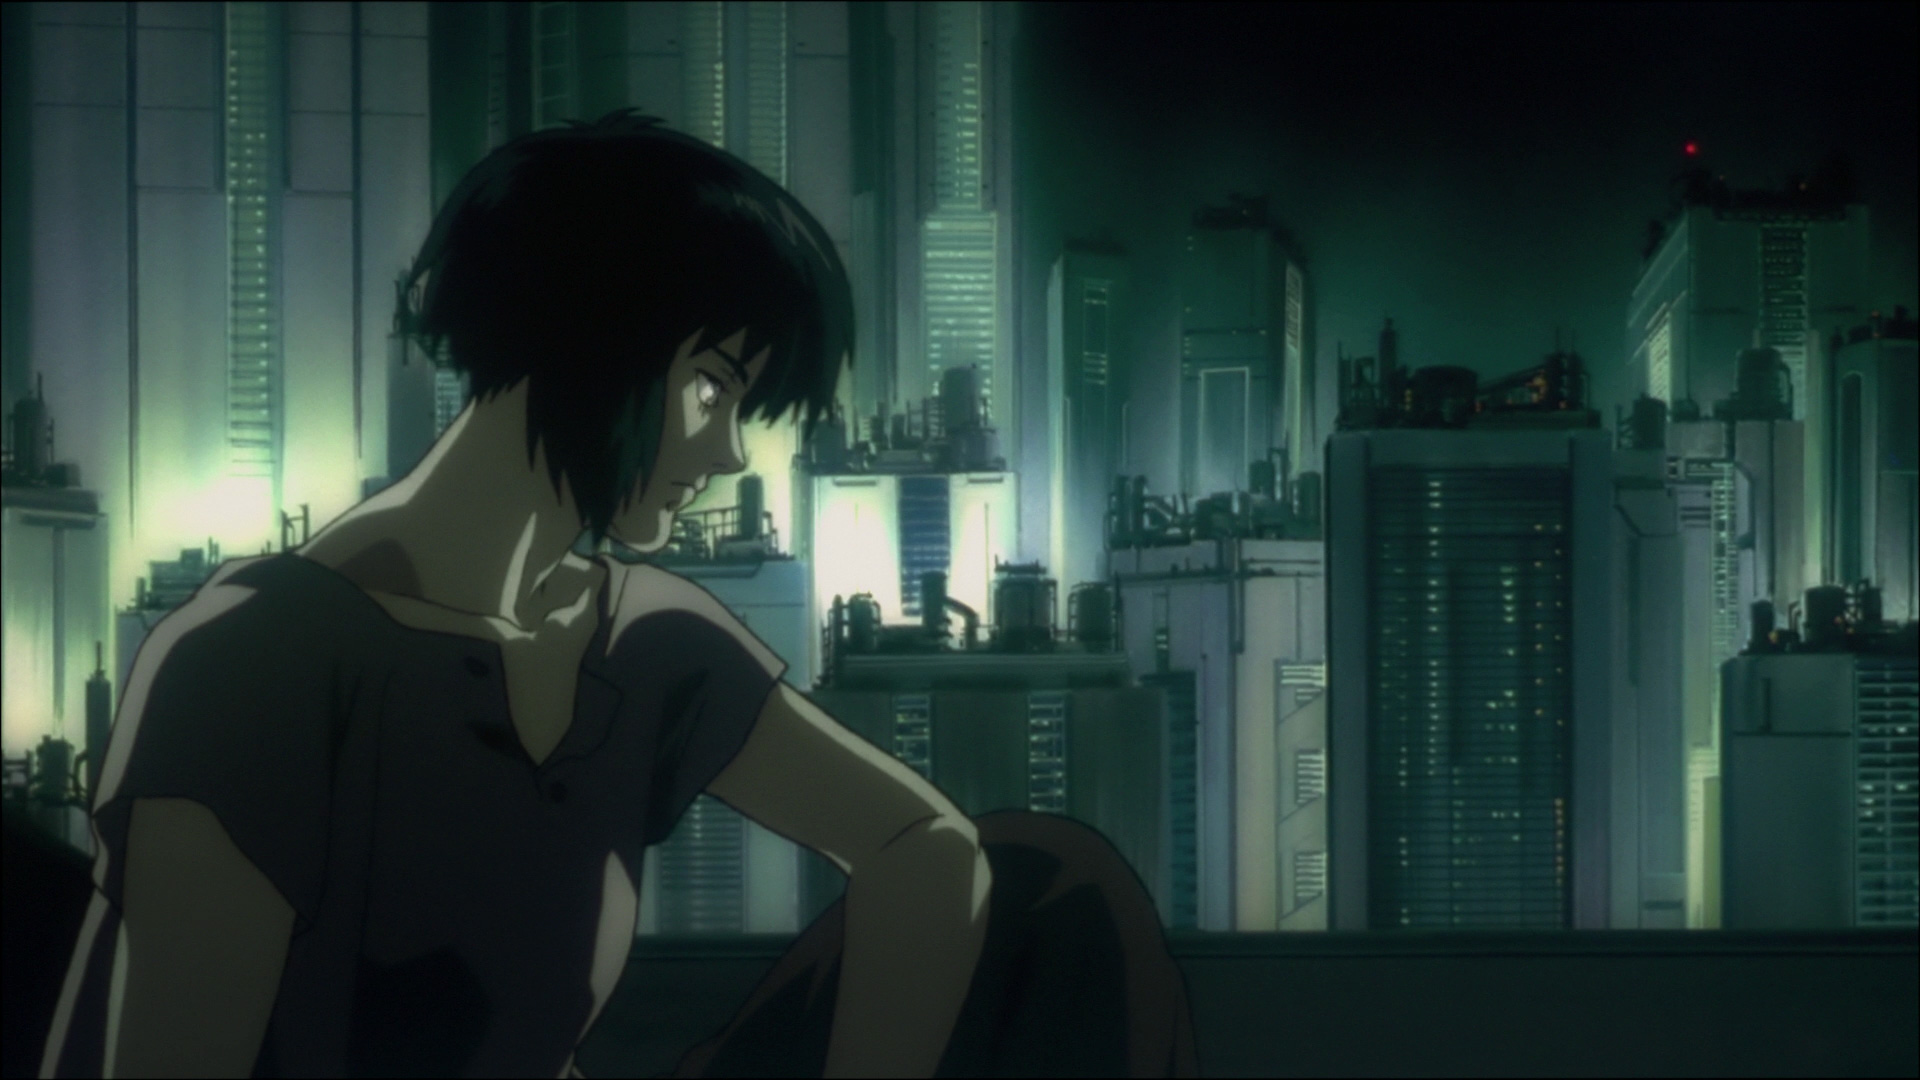 Ghost In The Shell Wallpaper Hd Posted By Christopher Peltier